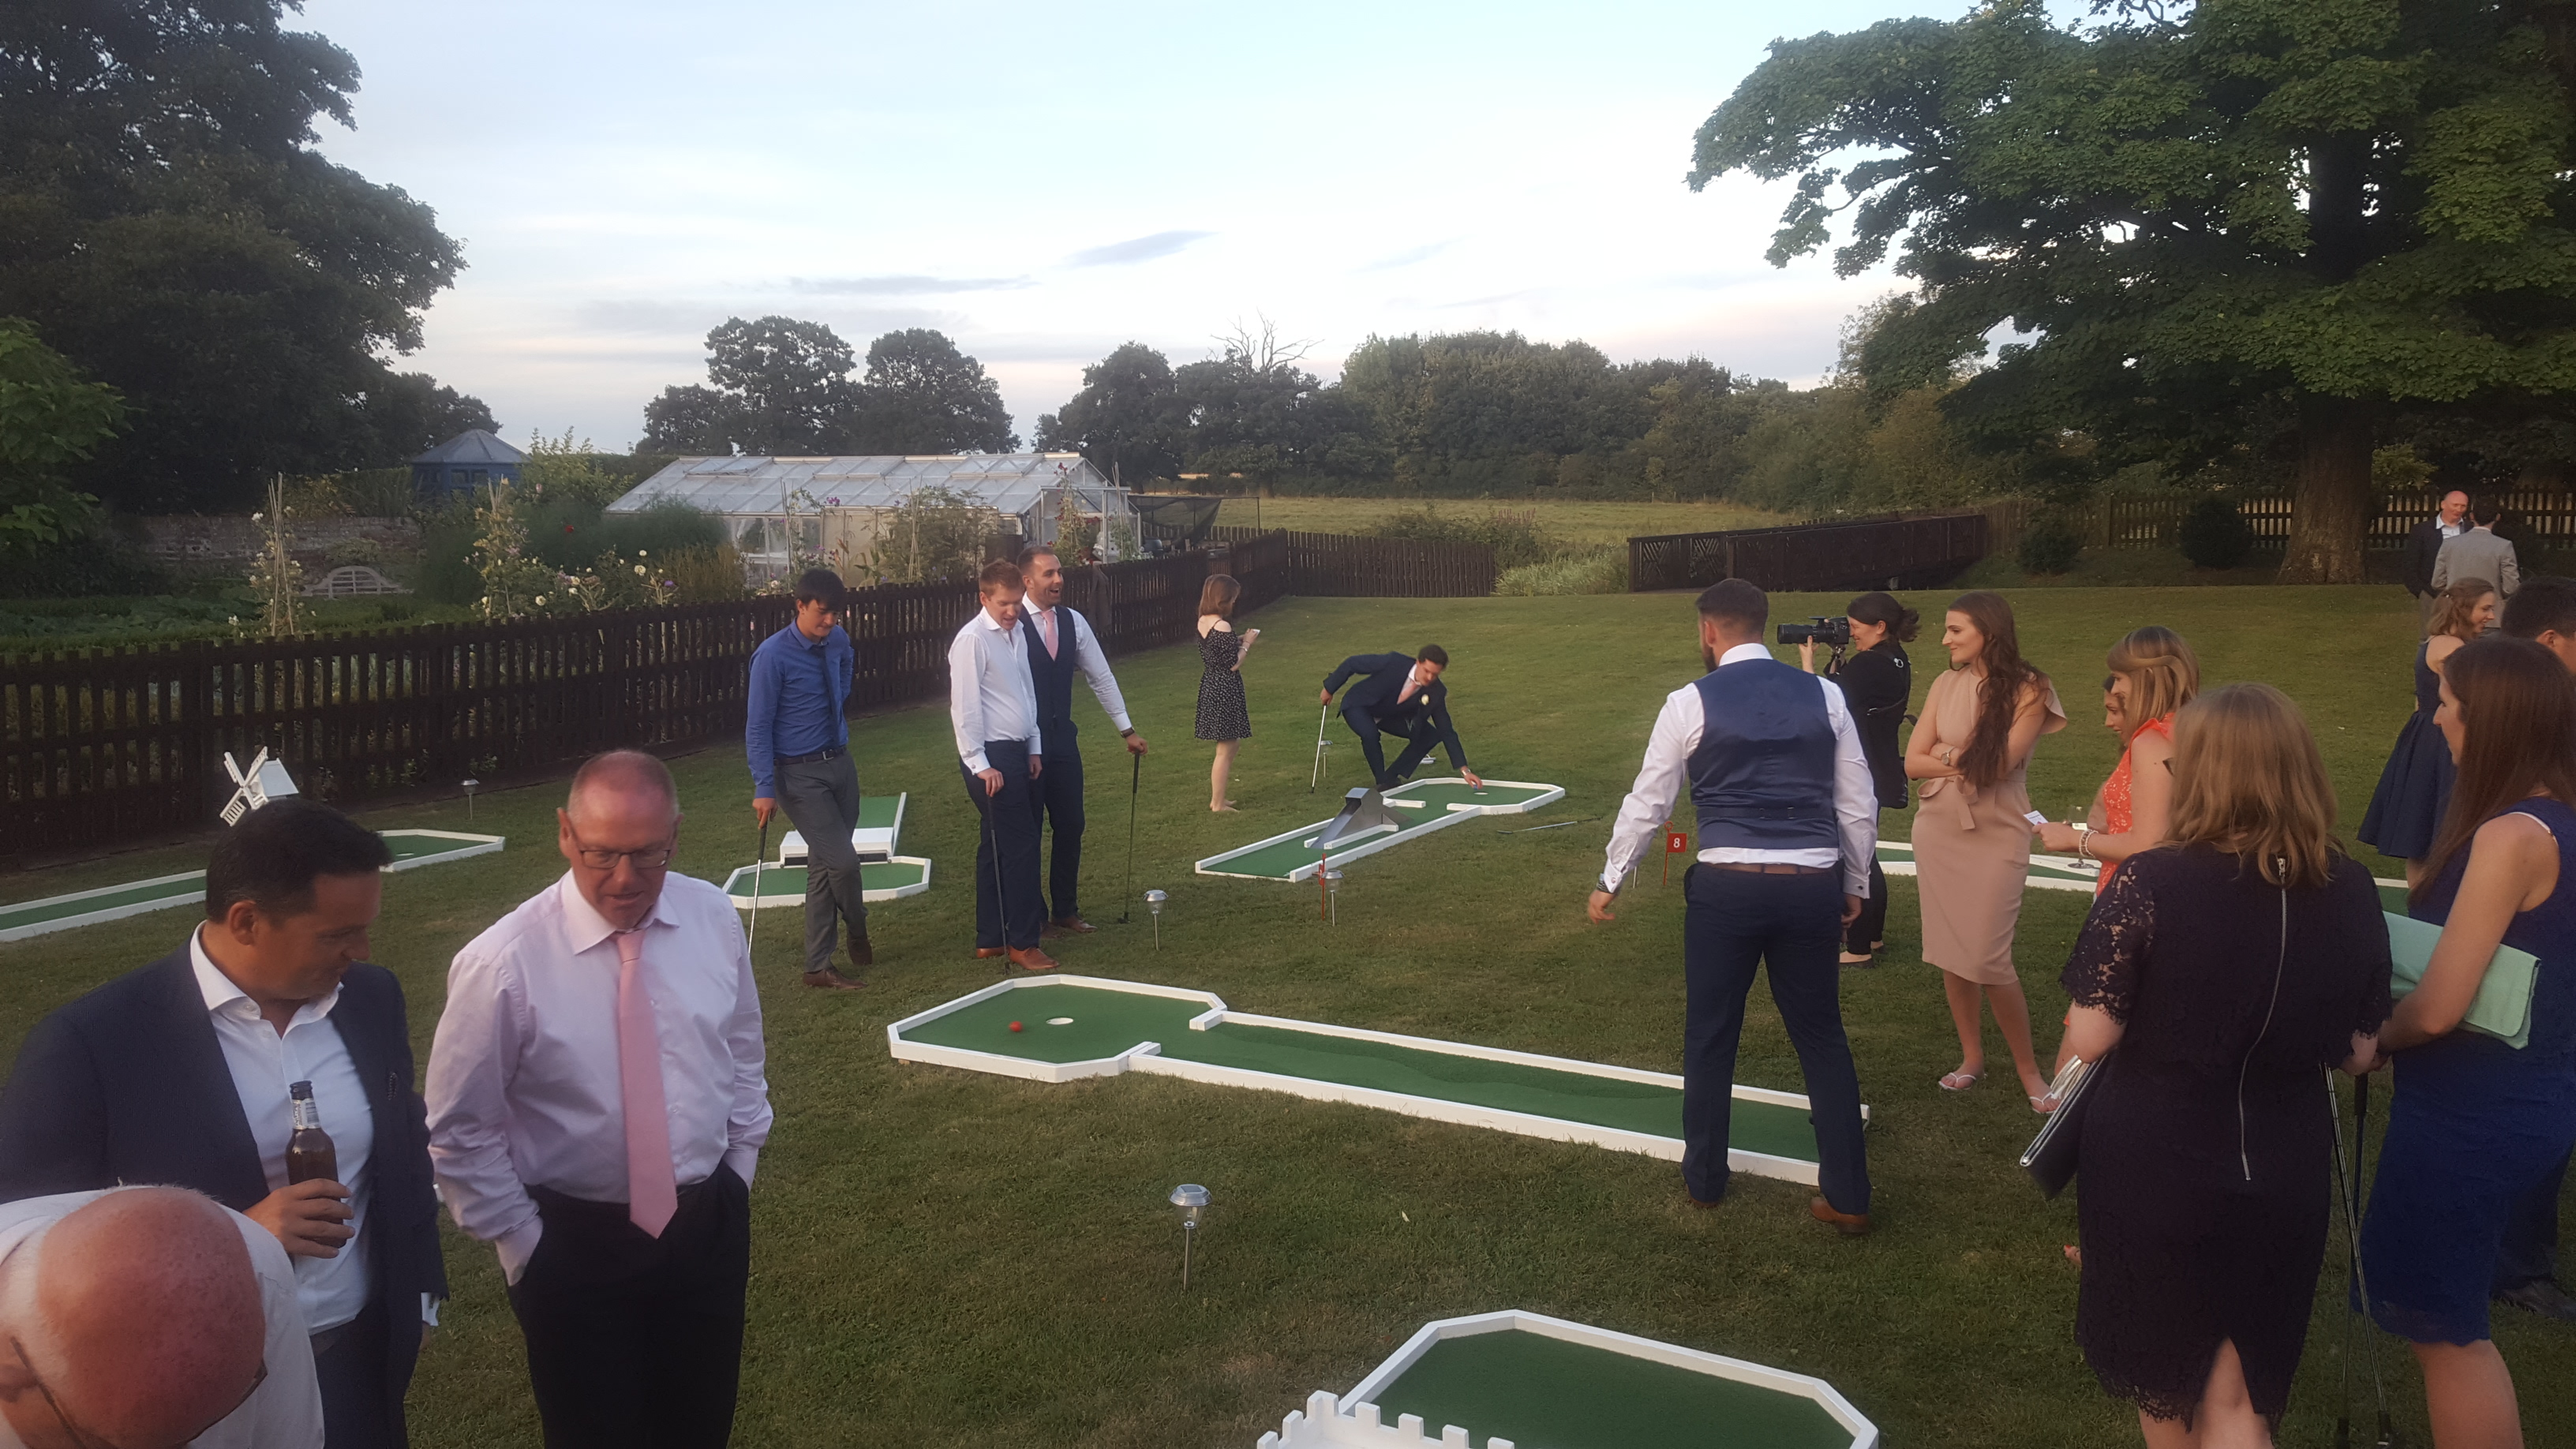 Mobile Crazy Golf Hire and Rental